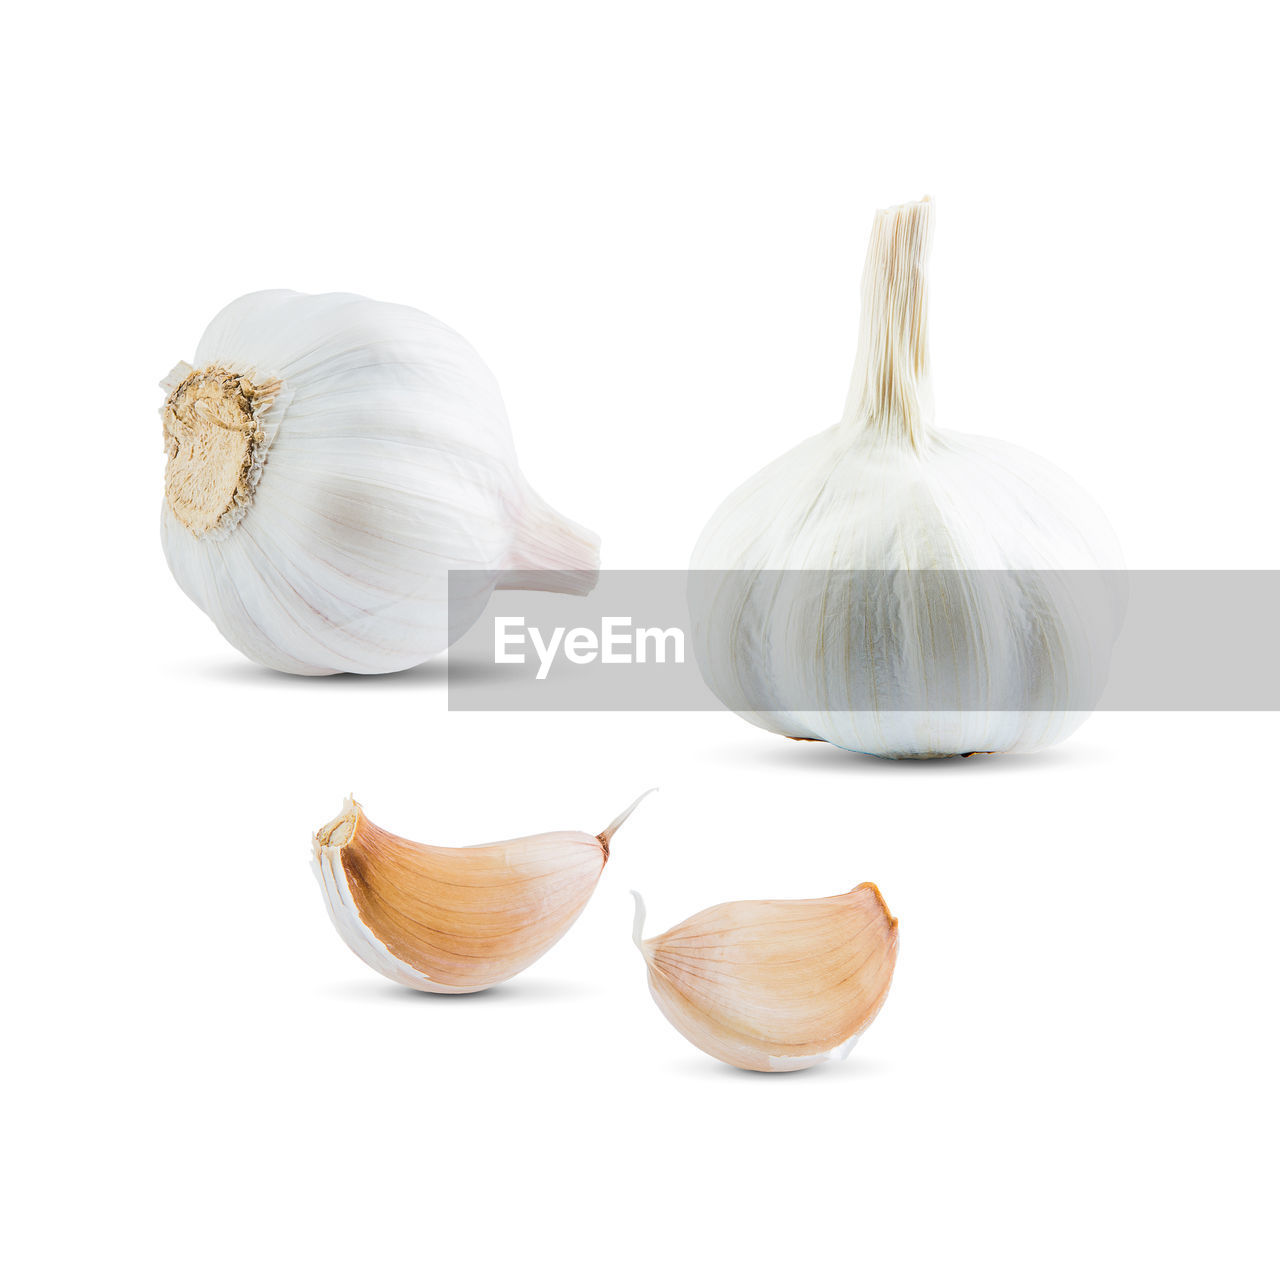 spice, garlic, food and drink, ingredient, studio shot, white background, food, still life, freshness, vegetable, garlic bulb, indoors, close-up, healthy eating, wellbeing, no people, white color, raw food, cut out, group of objects, garlic clove